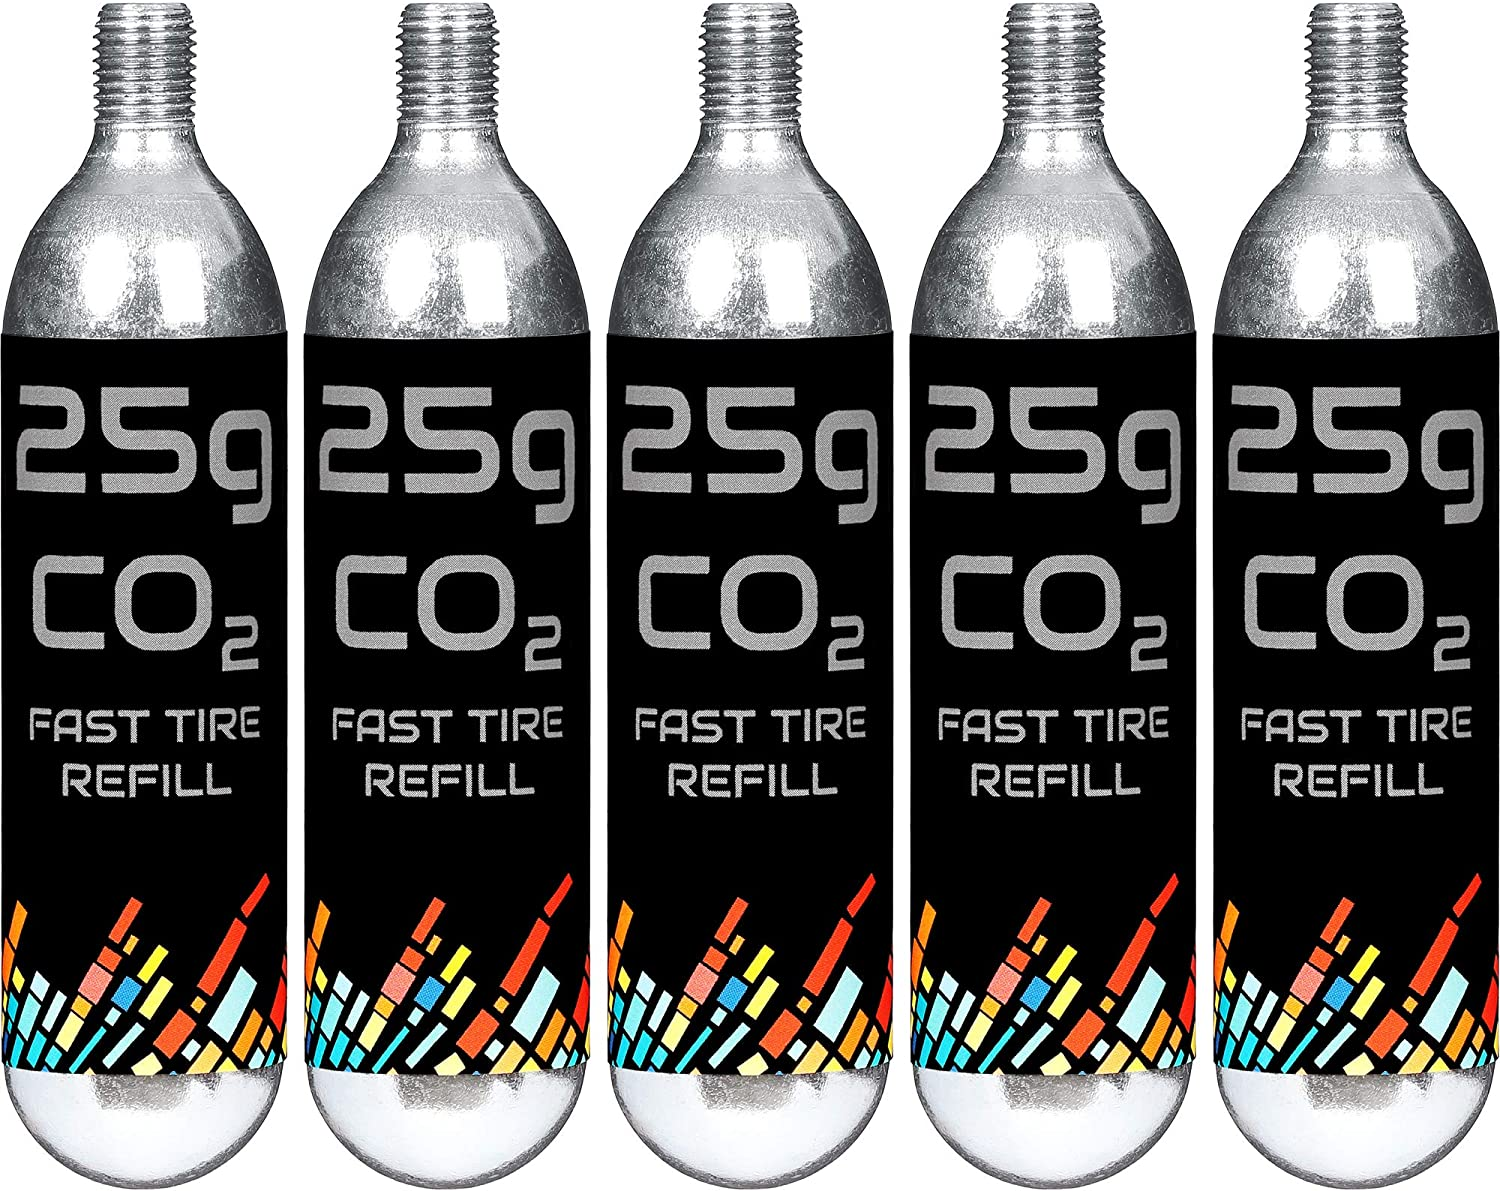 Gorilla Force | CO2 Cartridges 16g or 25g Threaded | 5 Pack